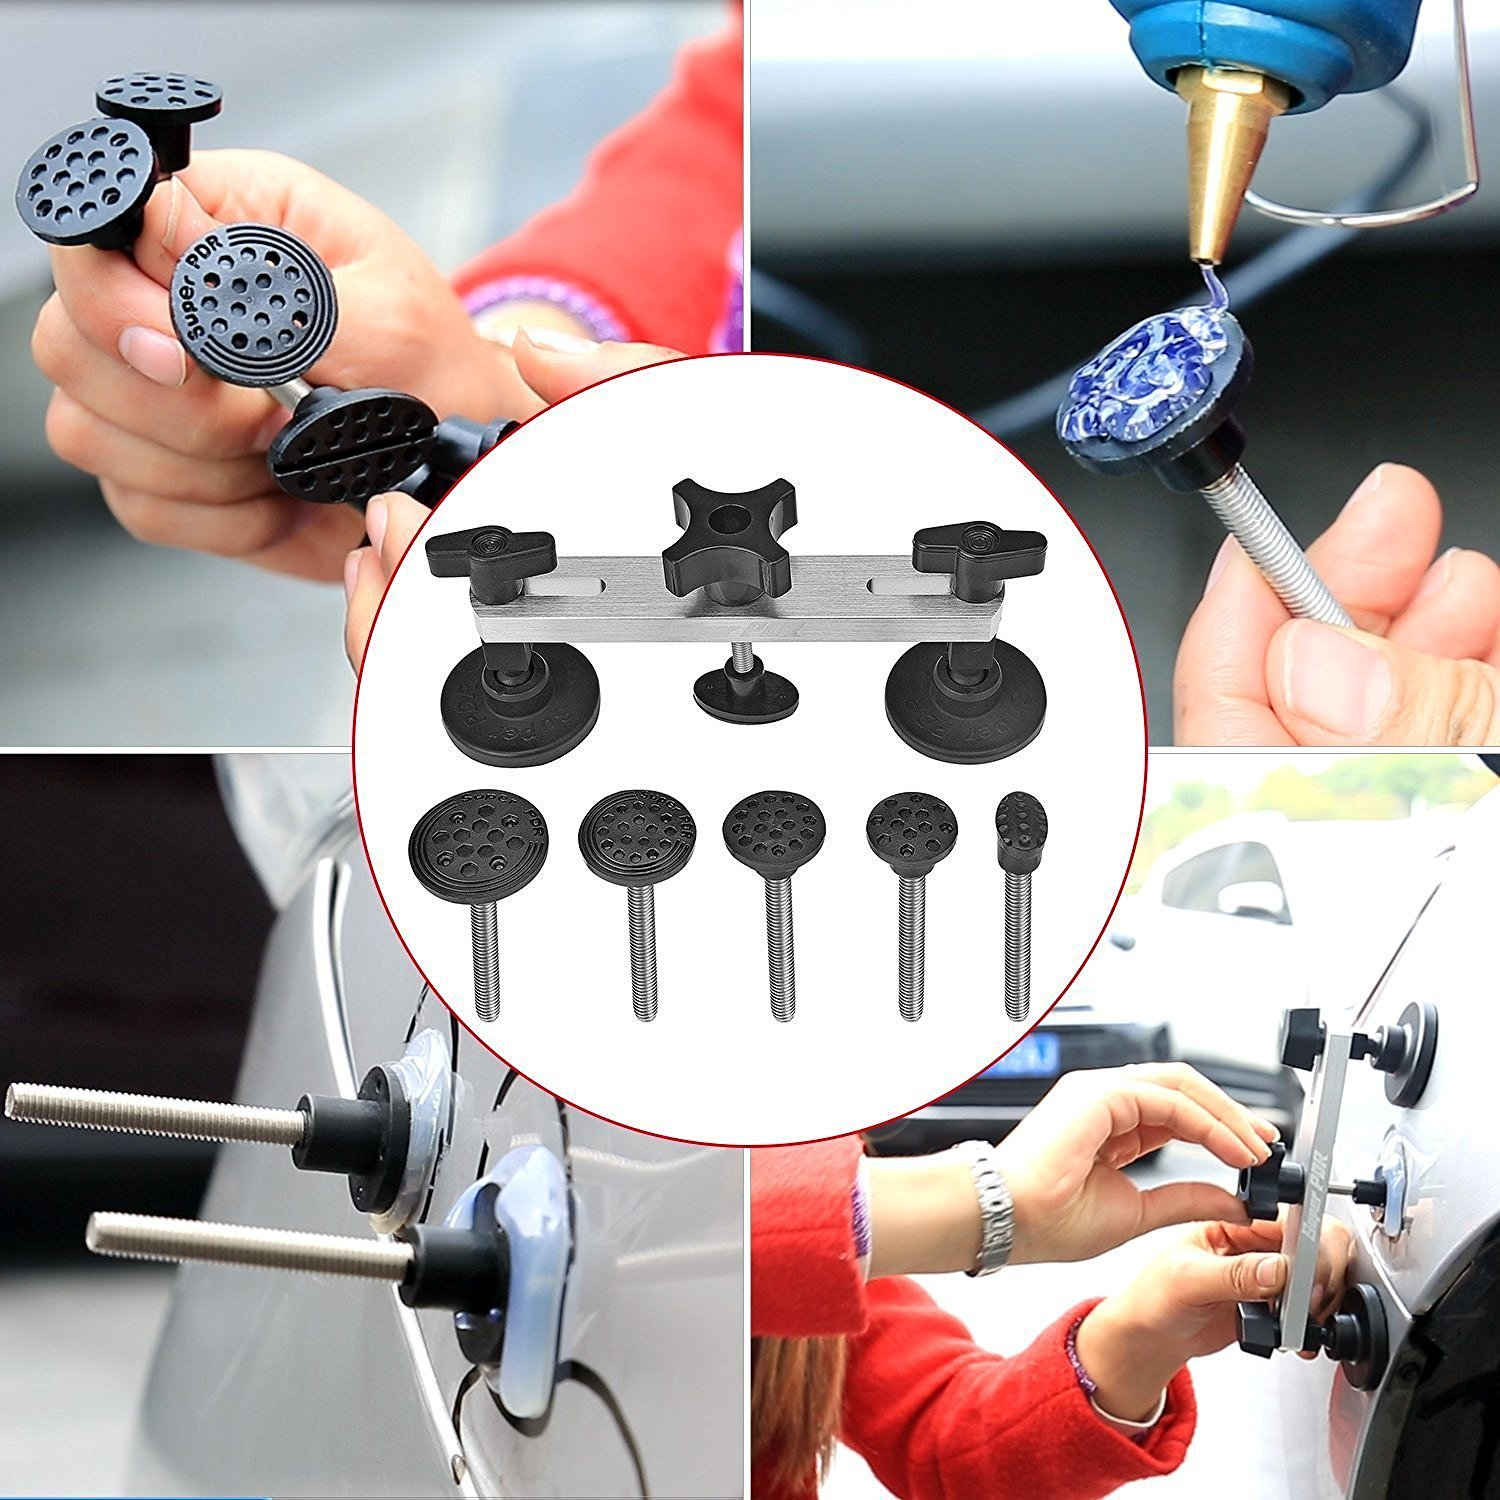 Super PDR 91Pcs PDR Rod Tools Kit Professional Hail Damage Door Ding Repair Kit Car Auto Body Paintless Dent Repair Removal Tool Set PDR Dent Puller kit Slide Hammer Push Rods by Super PDR (Image #7)